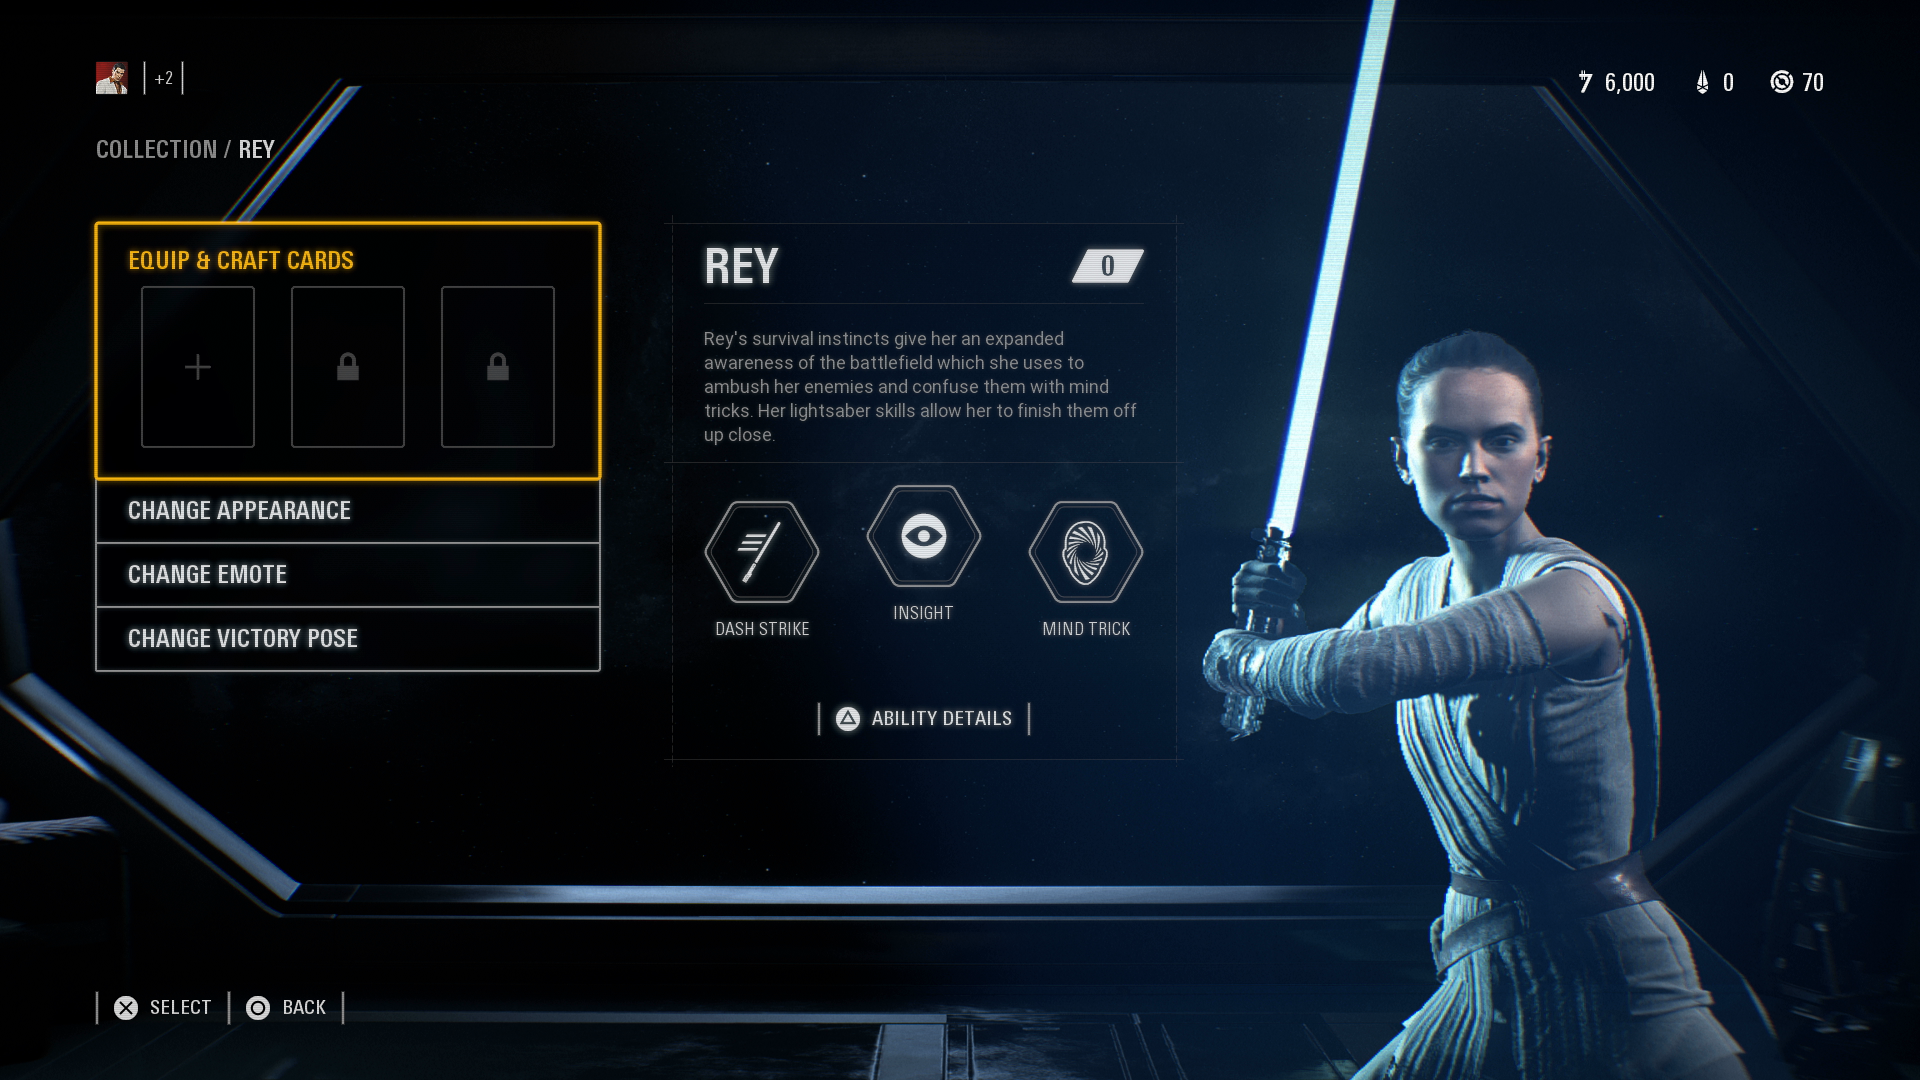 Star Wars: Battlefront II is a 'learning opportunity